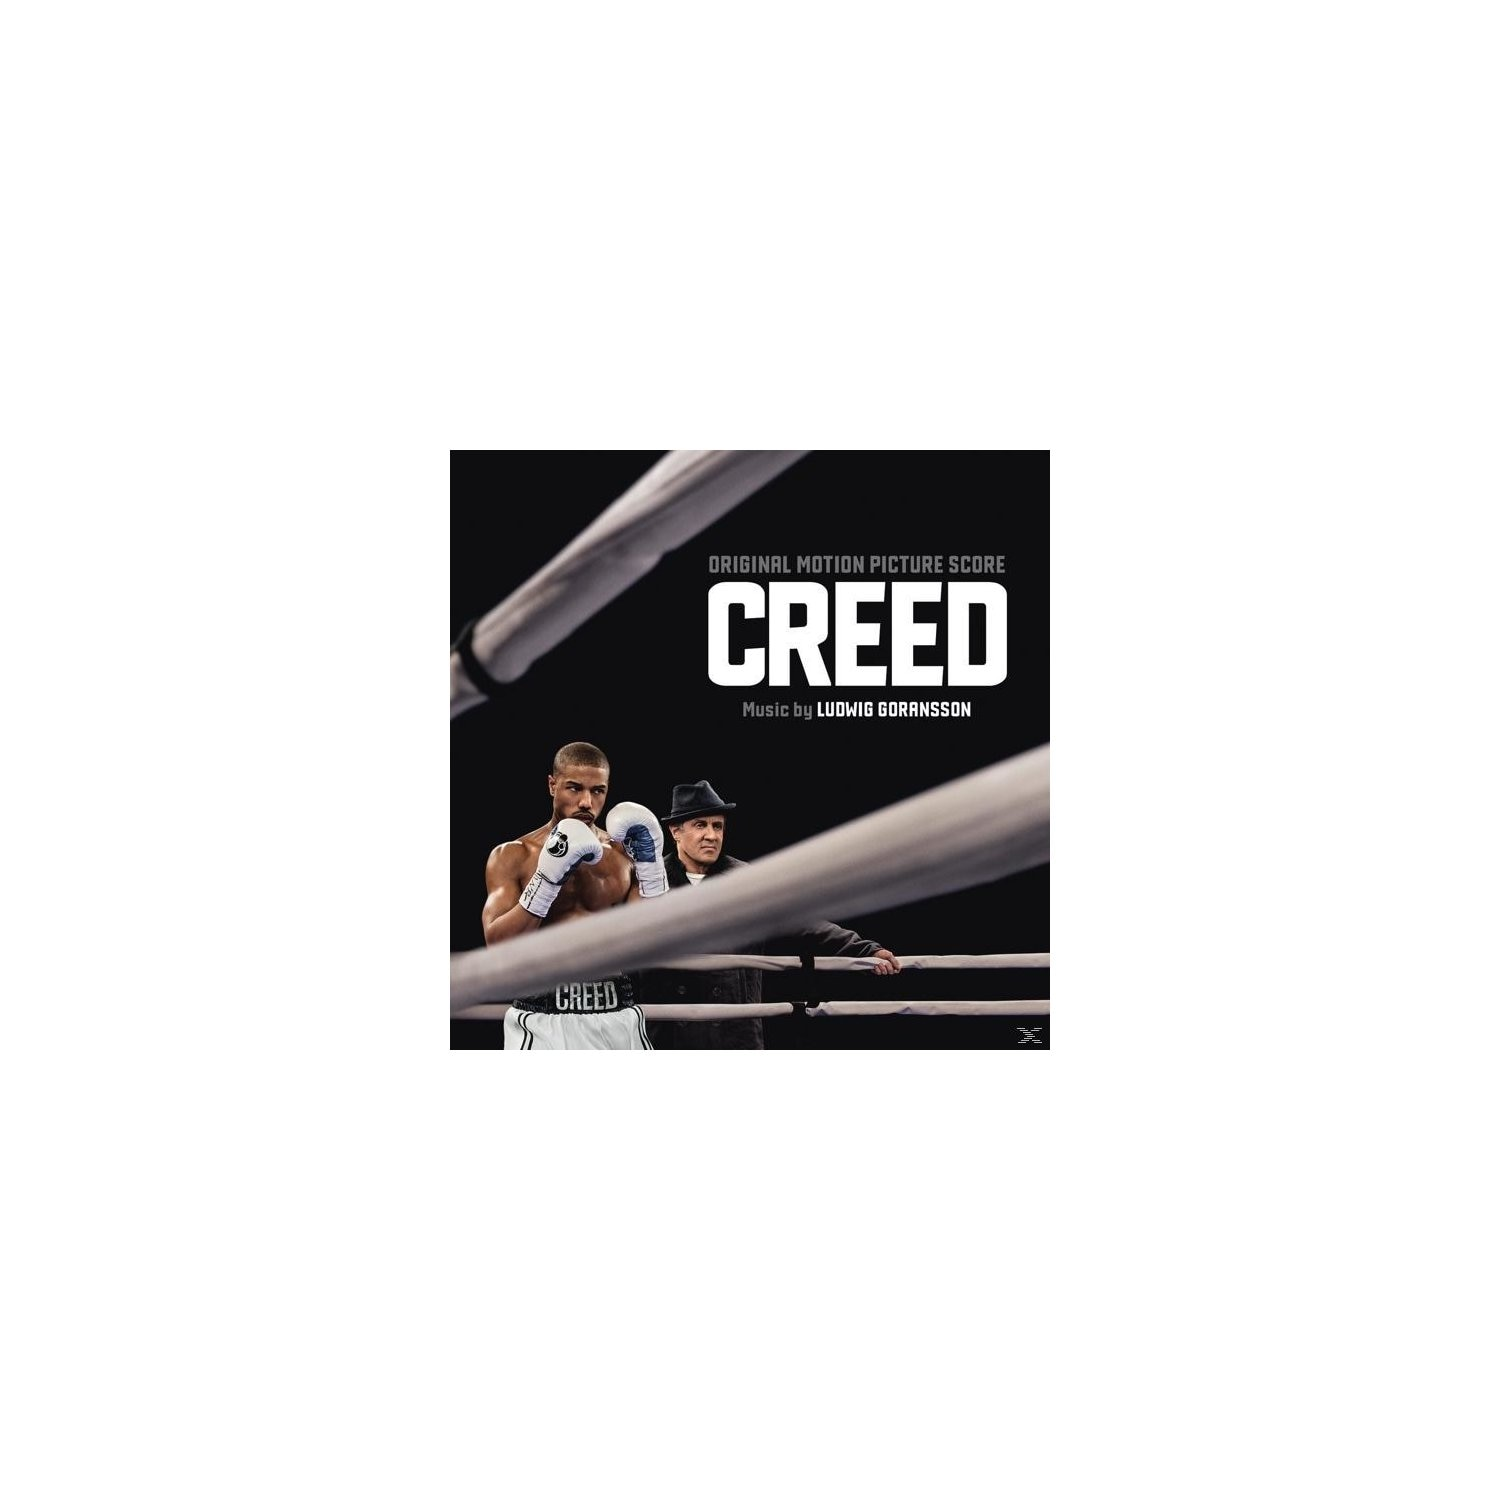 CREED (ORIGINAL MOTION PICTURE